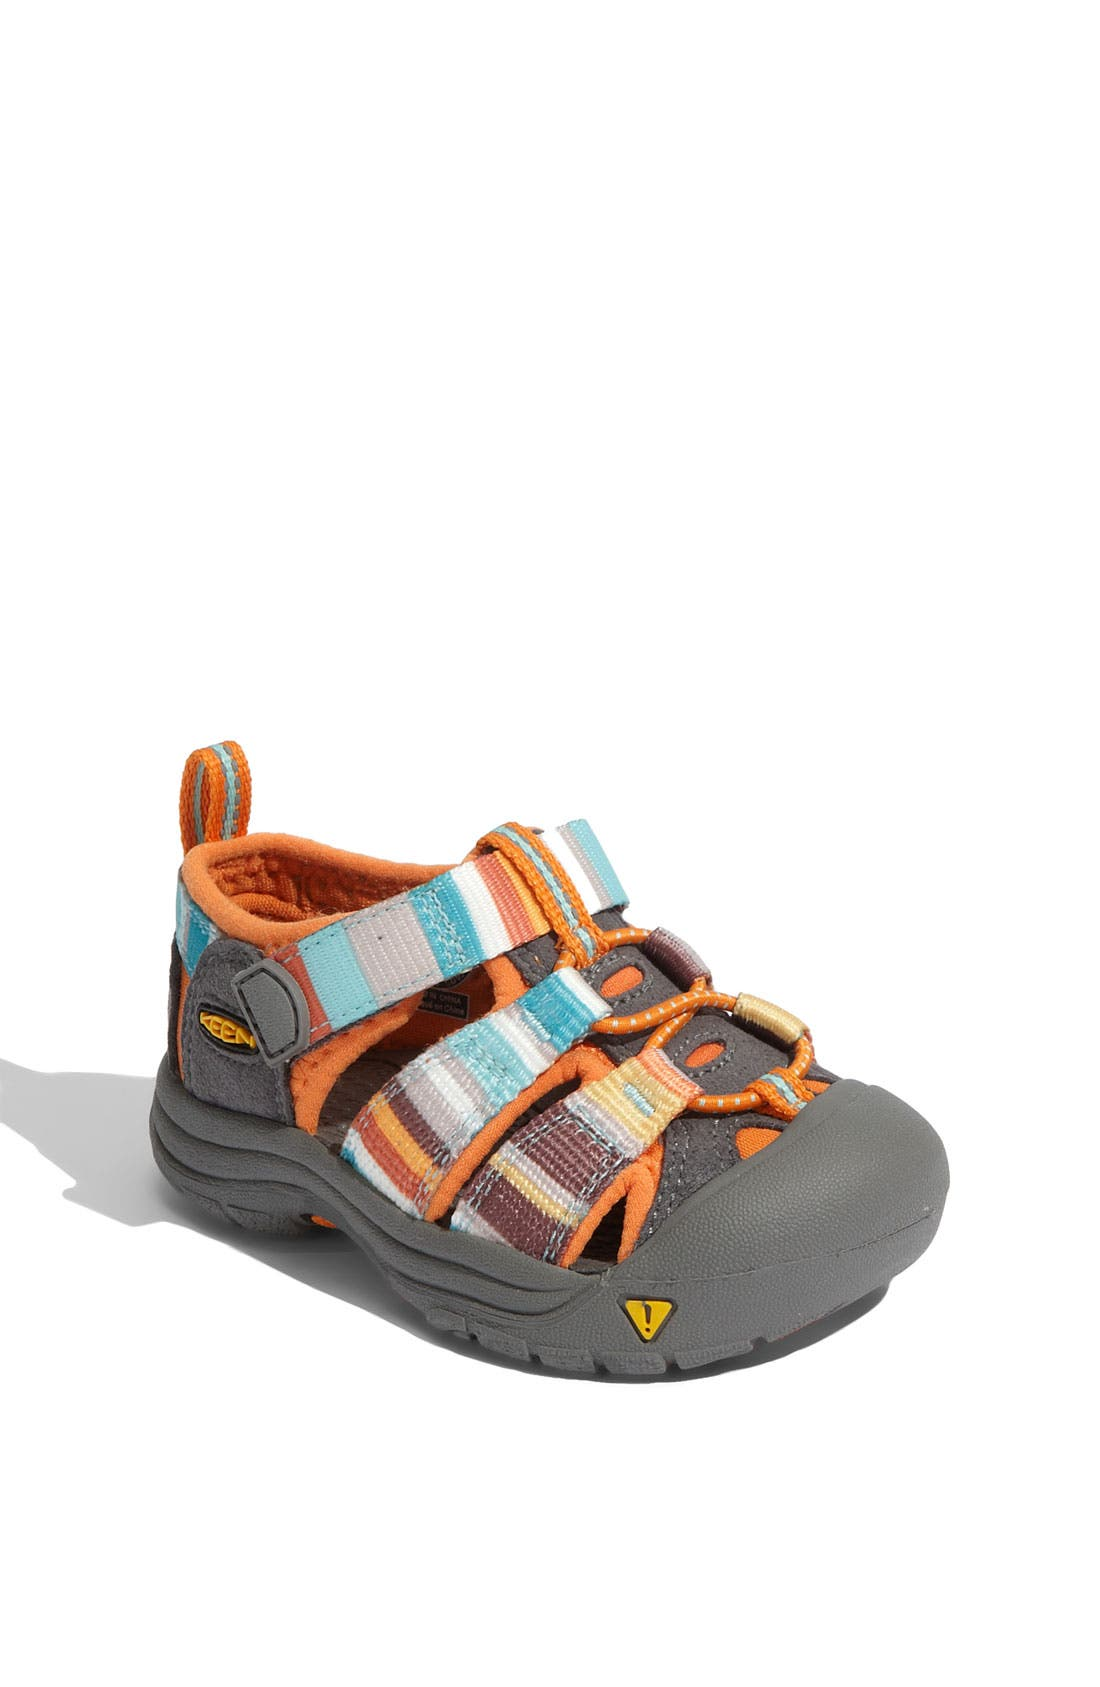 Alternate Image 1 Selected - Keen 'Newport H2' Sandal (Baby & Walker)